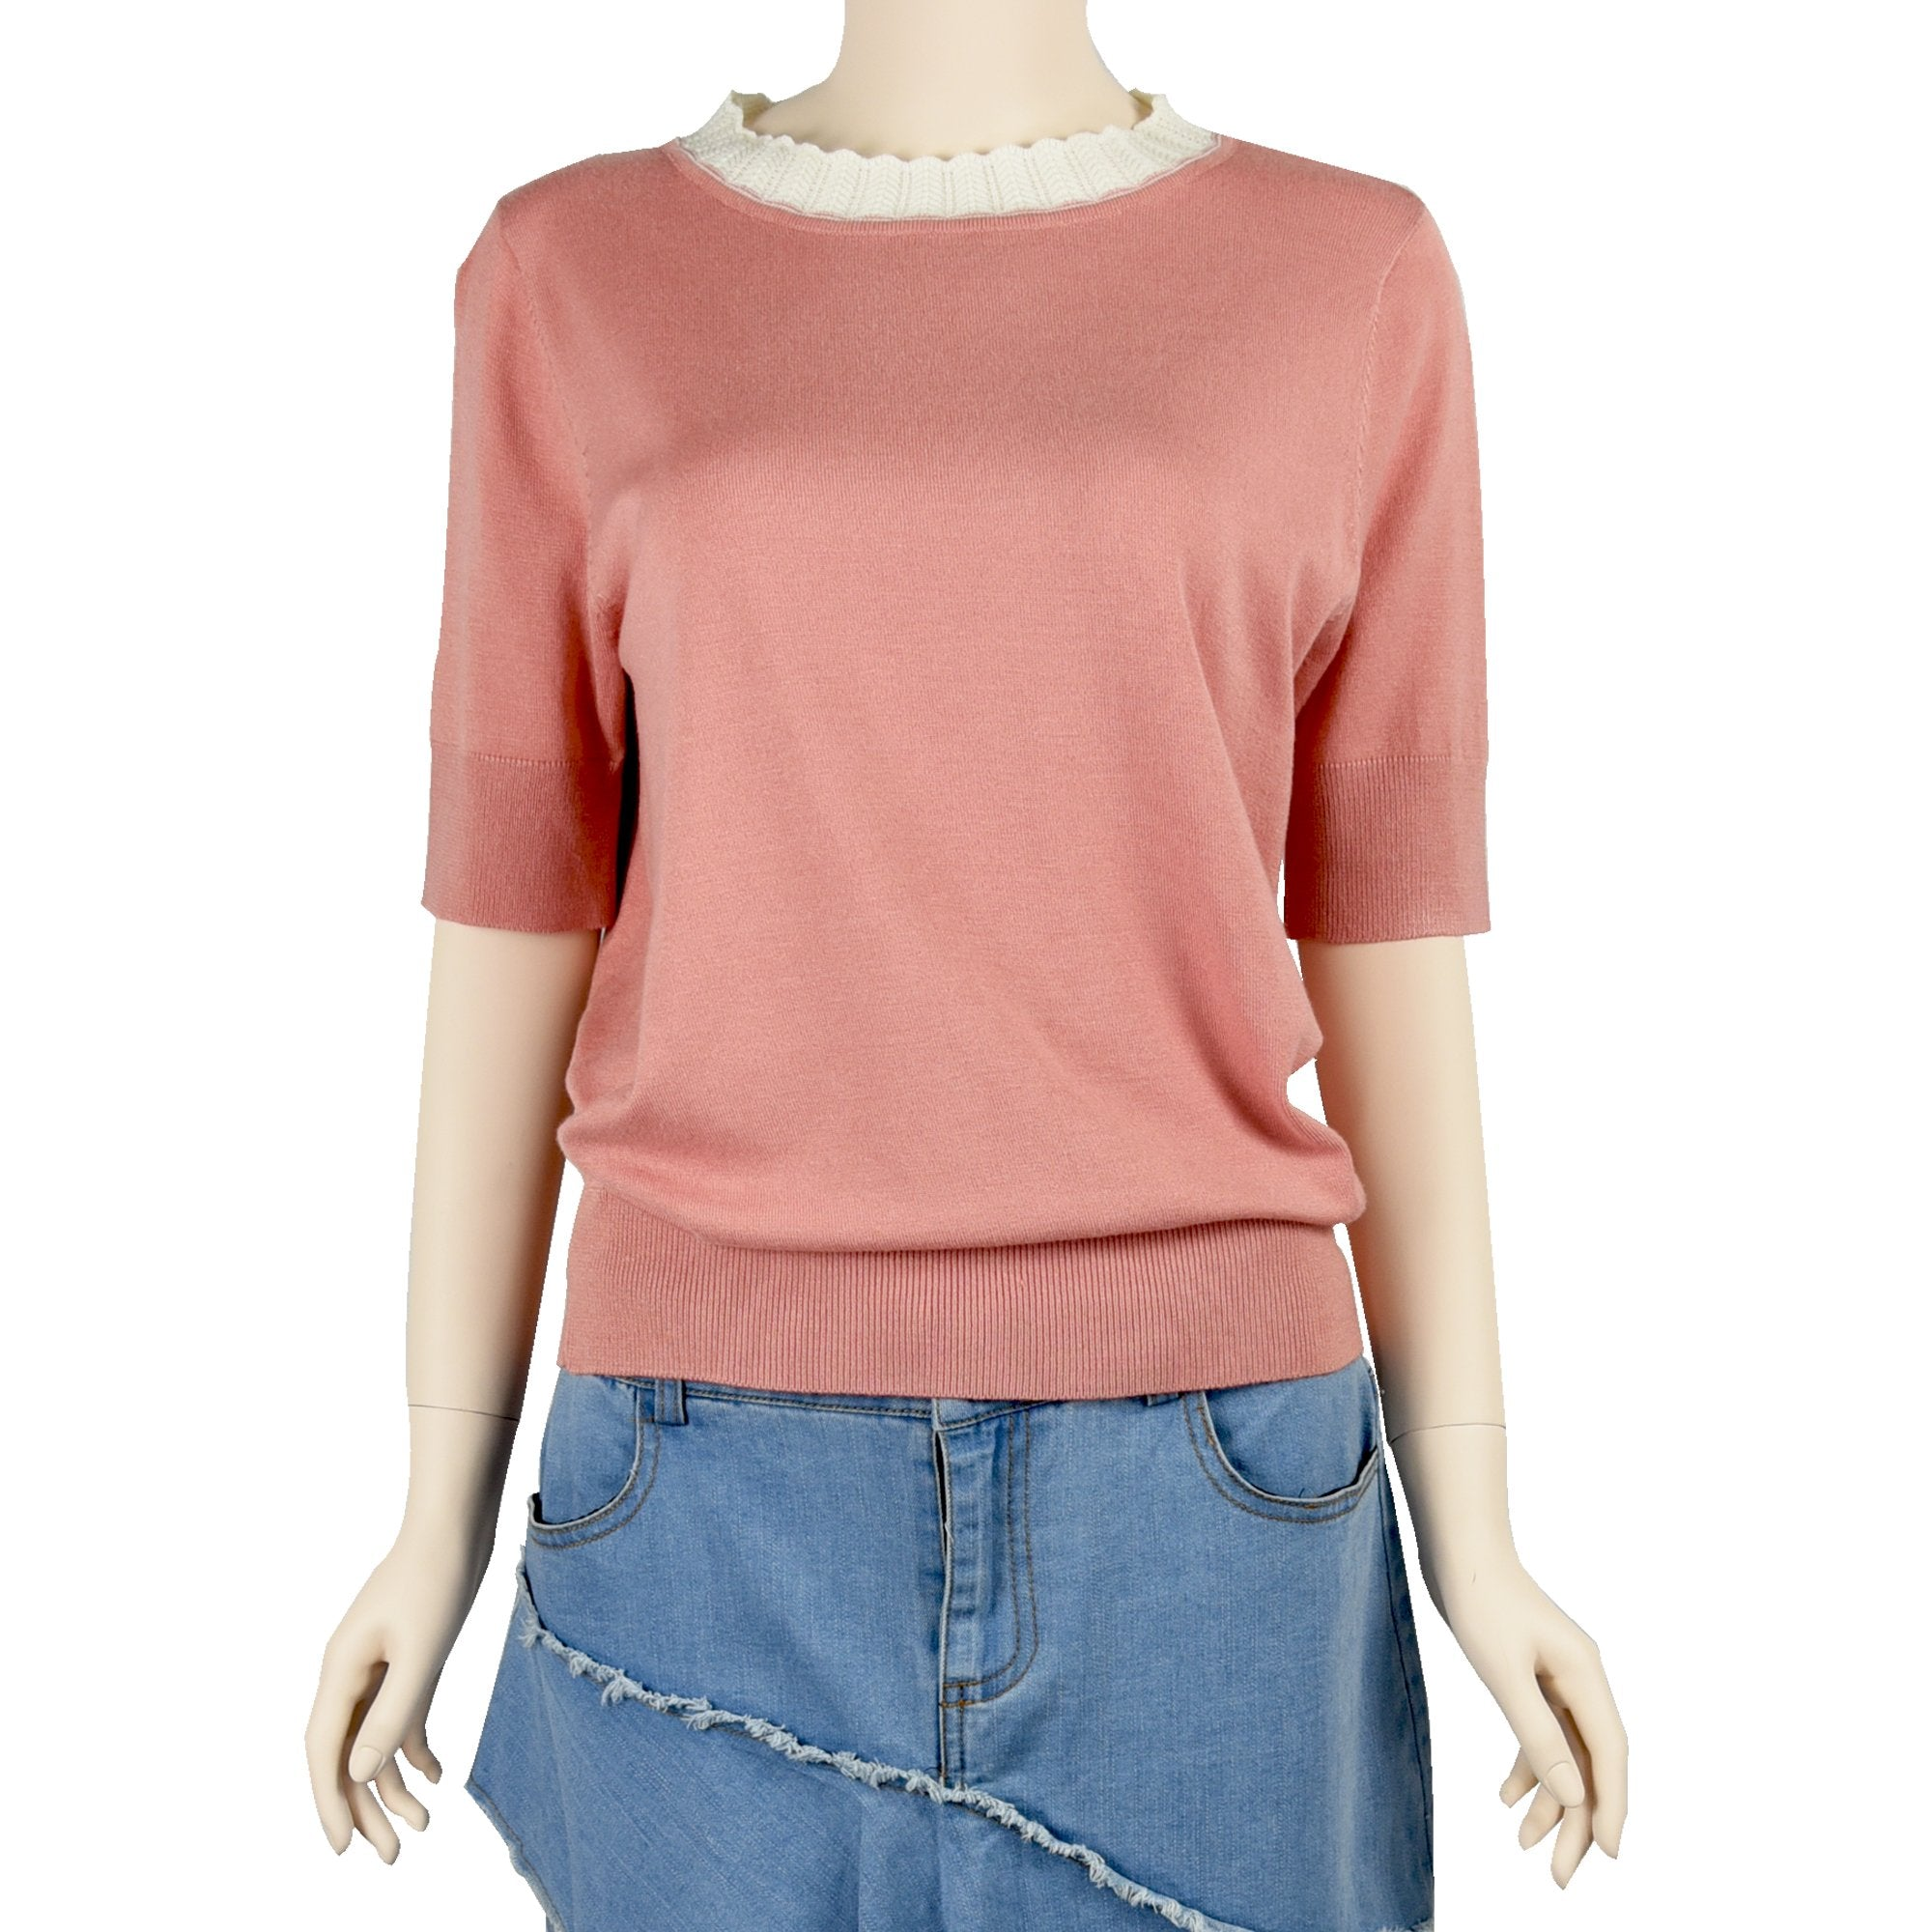 Patch Ladies Coral Pink short sleeve Cotton Knit Top with lace trimming